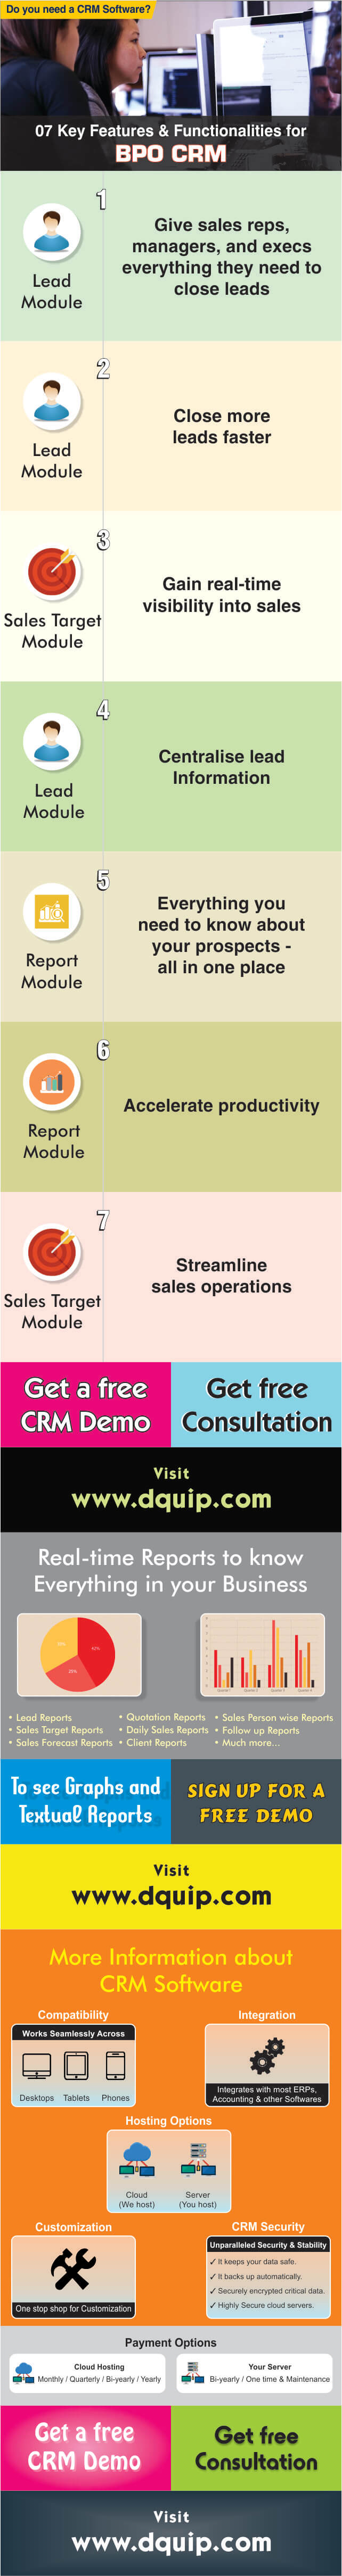 Infographic on Features & Functionalities of BPO CRM